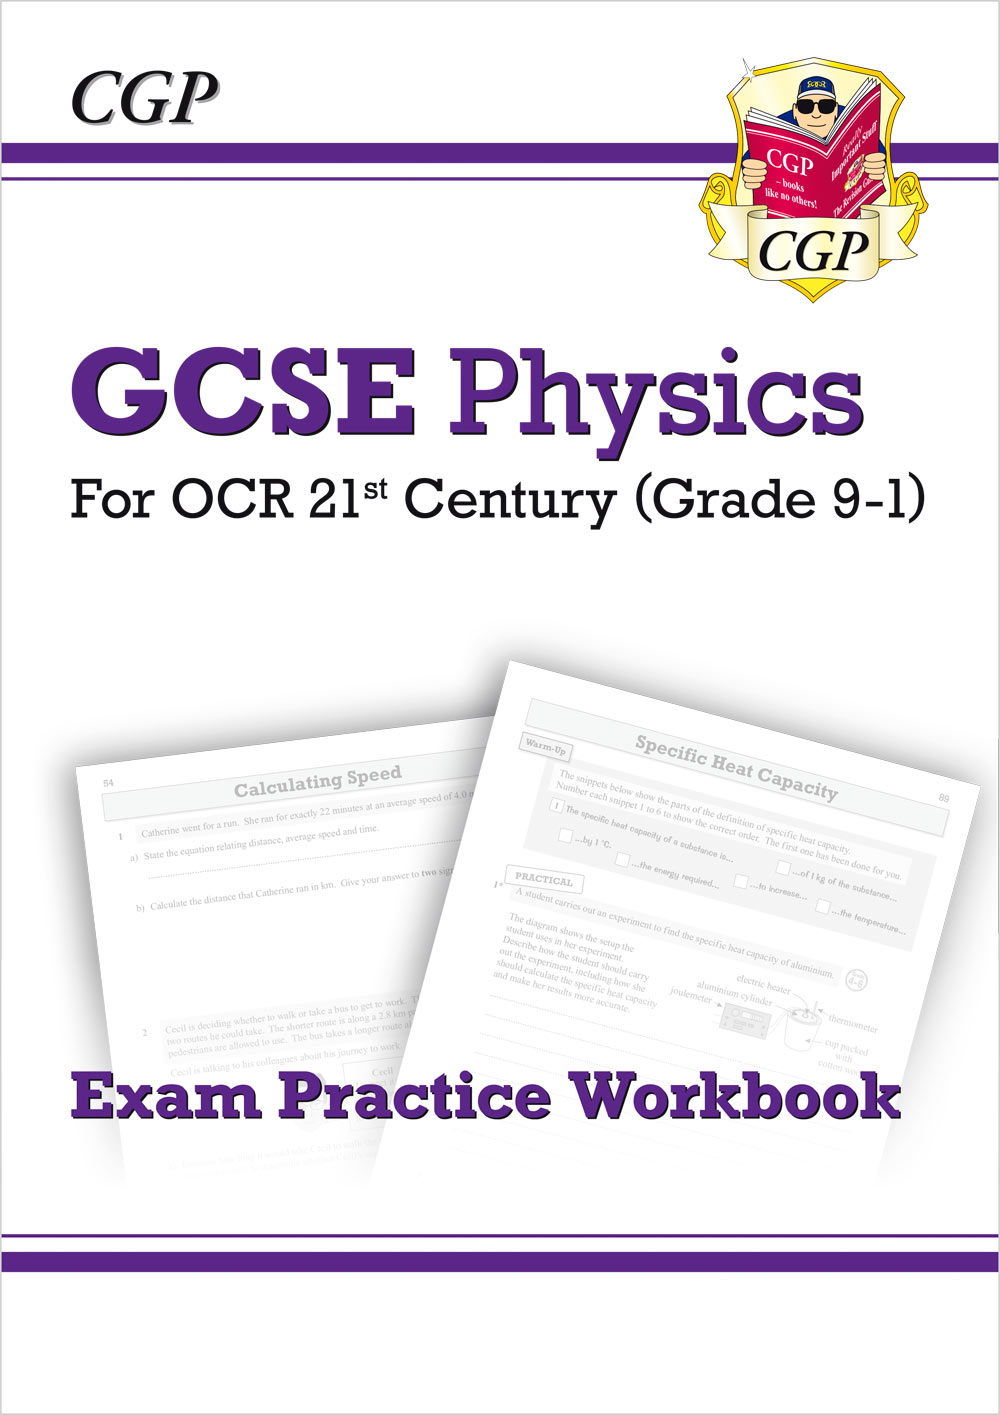 P2Q41 - Grade 9-1 GCSE Physics: OCR 21st Century Exam Practice Workbook